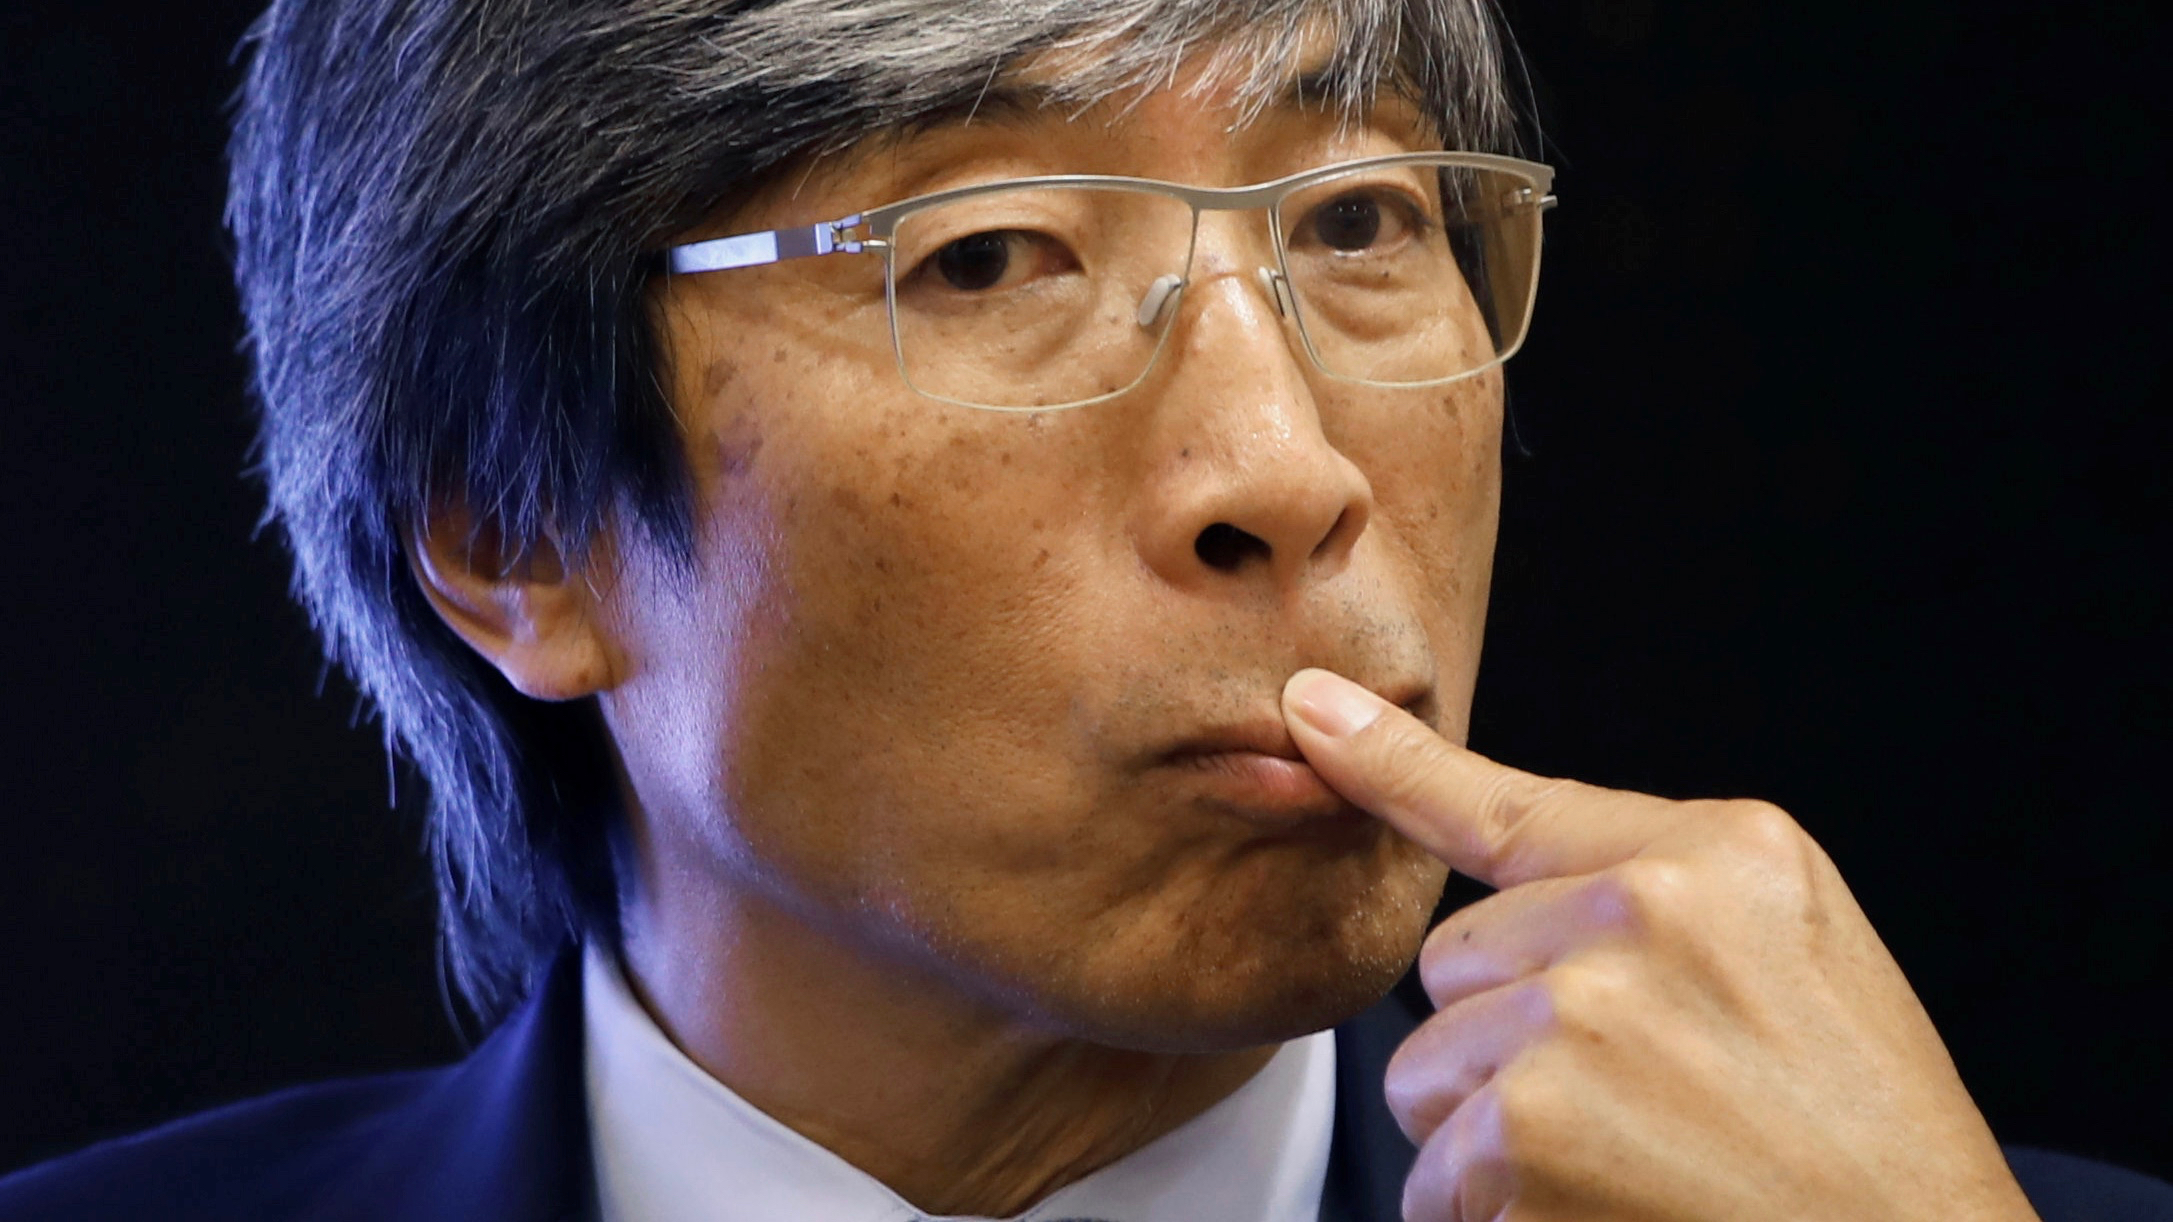 Patrick Soon-Shiong, medical researcher and chairman of the Chan Soon-Shiong Family Foundation, attends the Cancer MoonShot news conference in Taipei, Taiwan, September 26, 2016. REUTERS/Tyrone Siu - S1BEUDNSZAAB